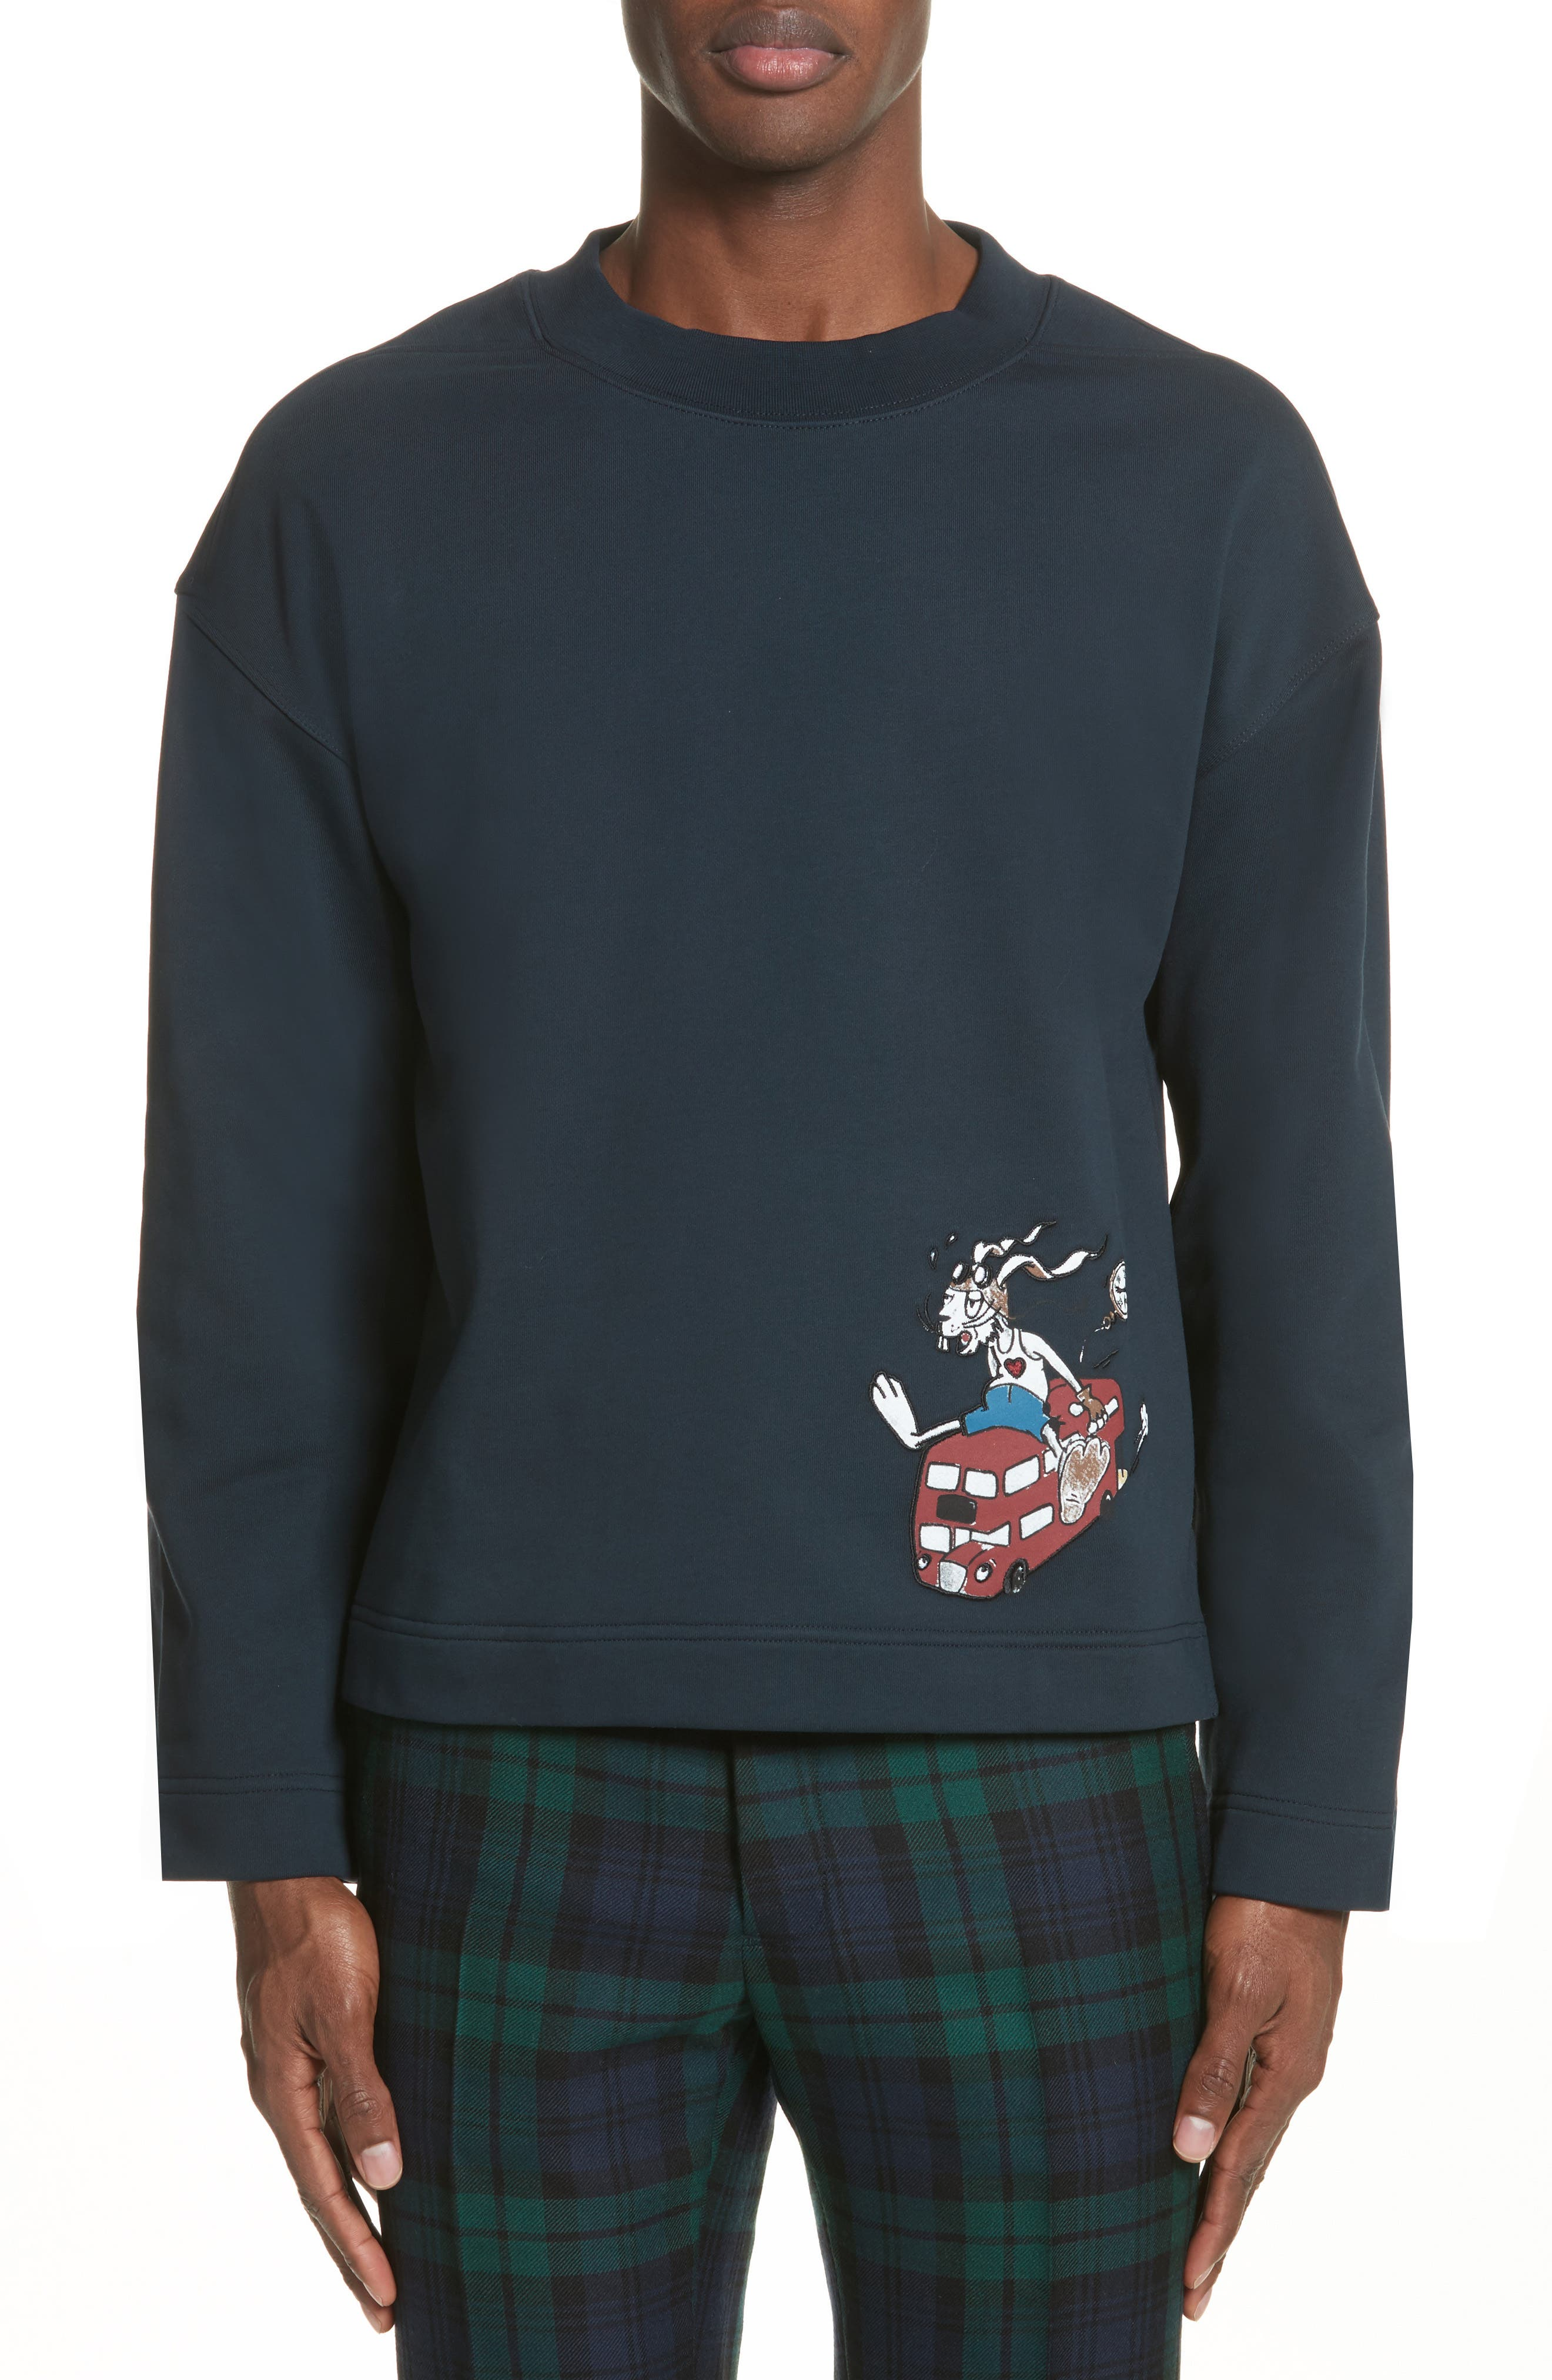 Burberry Sketch Print Appliquéd Cropped Sweatshirt